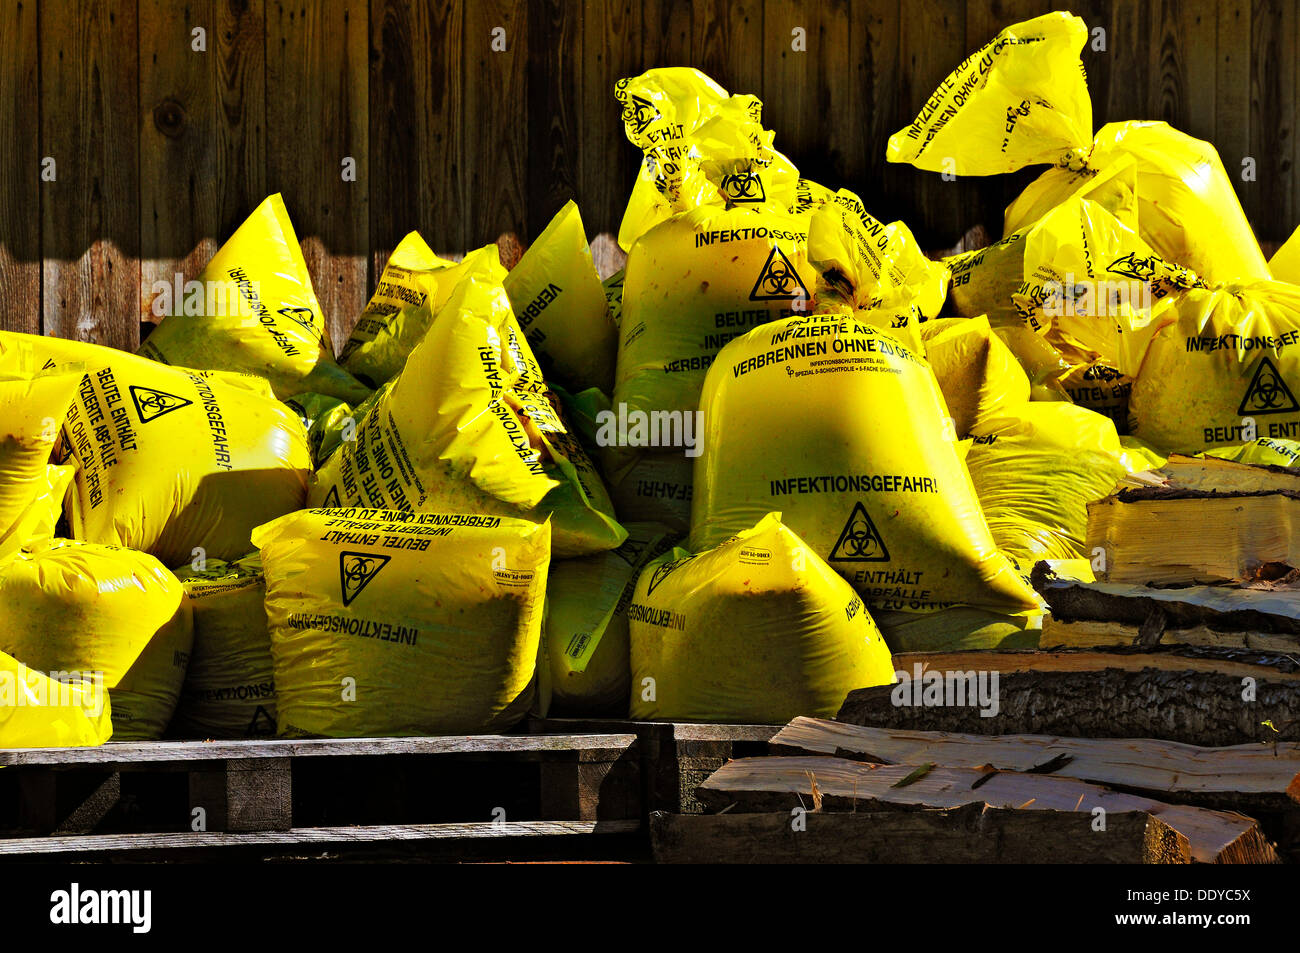 Yellow bags with infectious waste, Bavaria - Stock Image